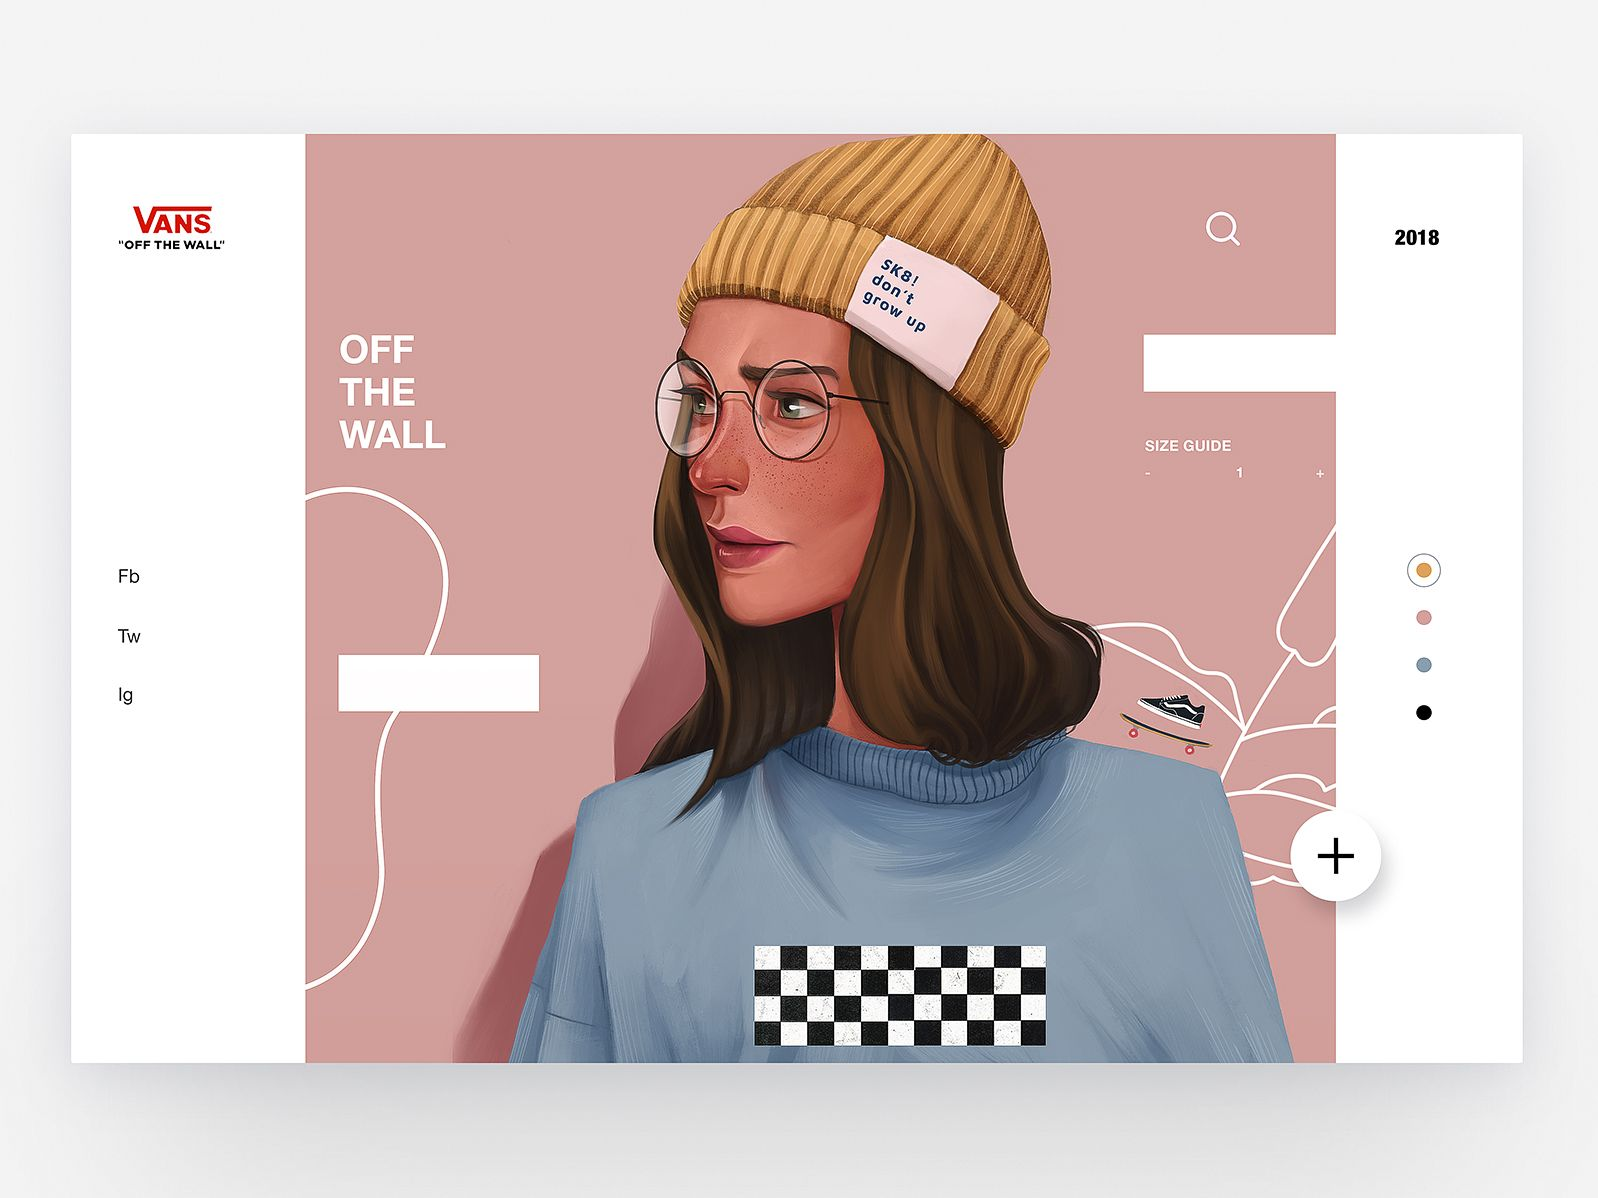 7151aebeb0 Vans - Concept Illustration Design II character app concept skate vans web  interface animation illustration ux design ui